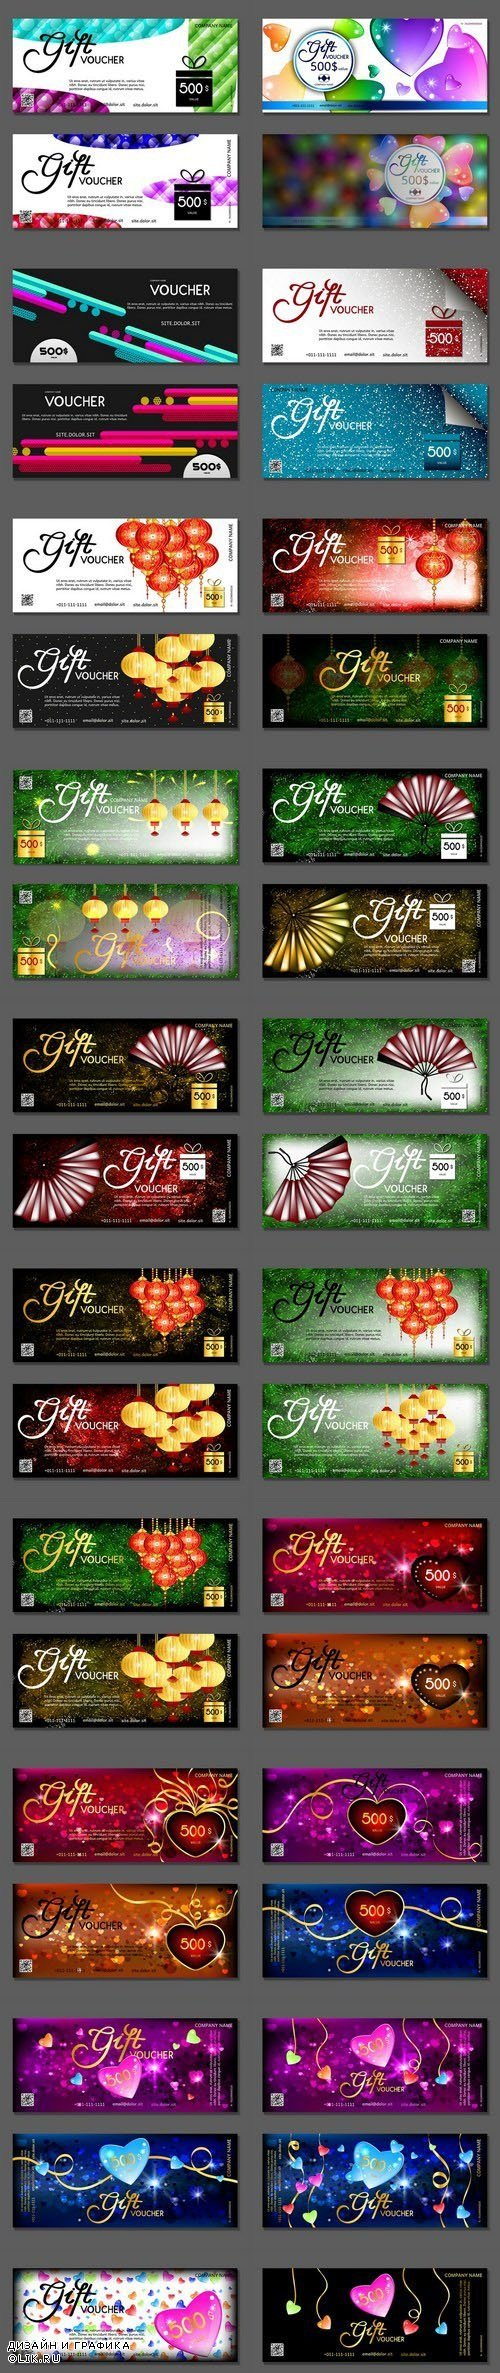 Collection of gift cards and vouchers 6 - Set of 20xEPS Professional Vector Stock